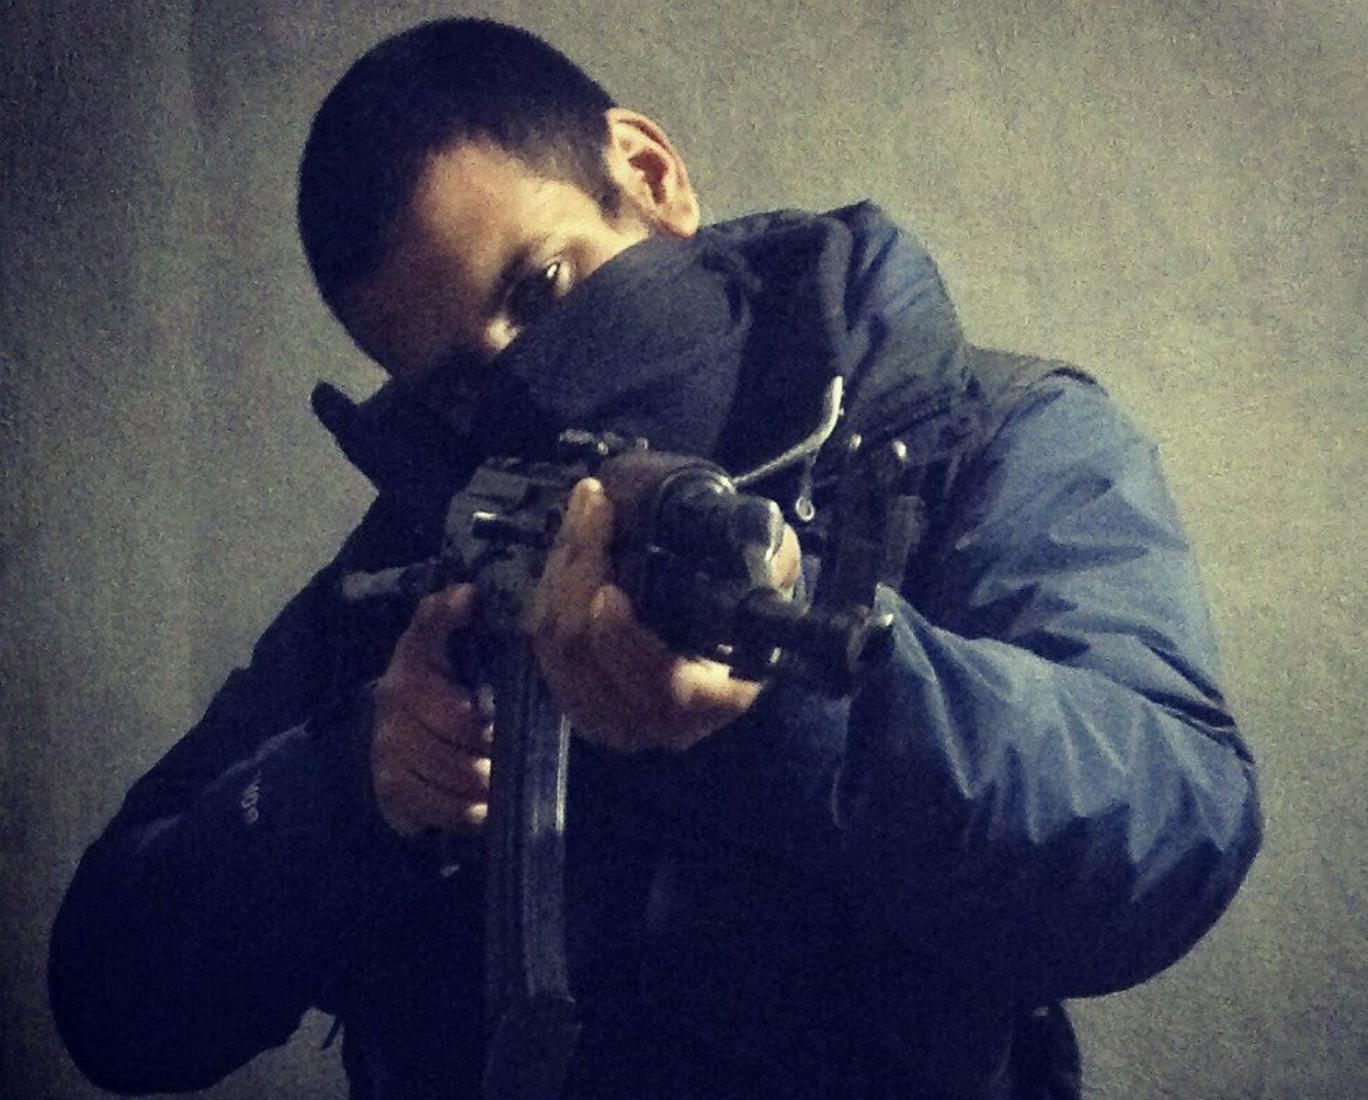 British cyber terrorist Junaid Hussain. His killing by the US also caused the deaths of at least three civilians in Raqaa